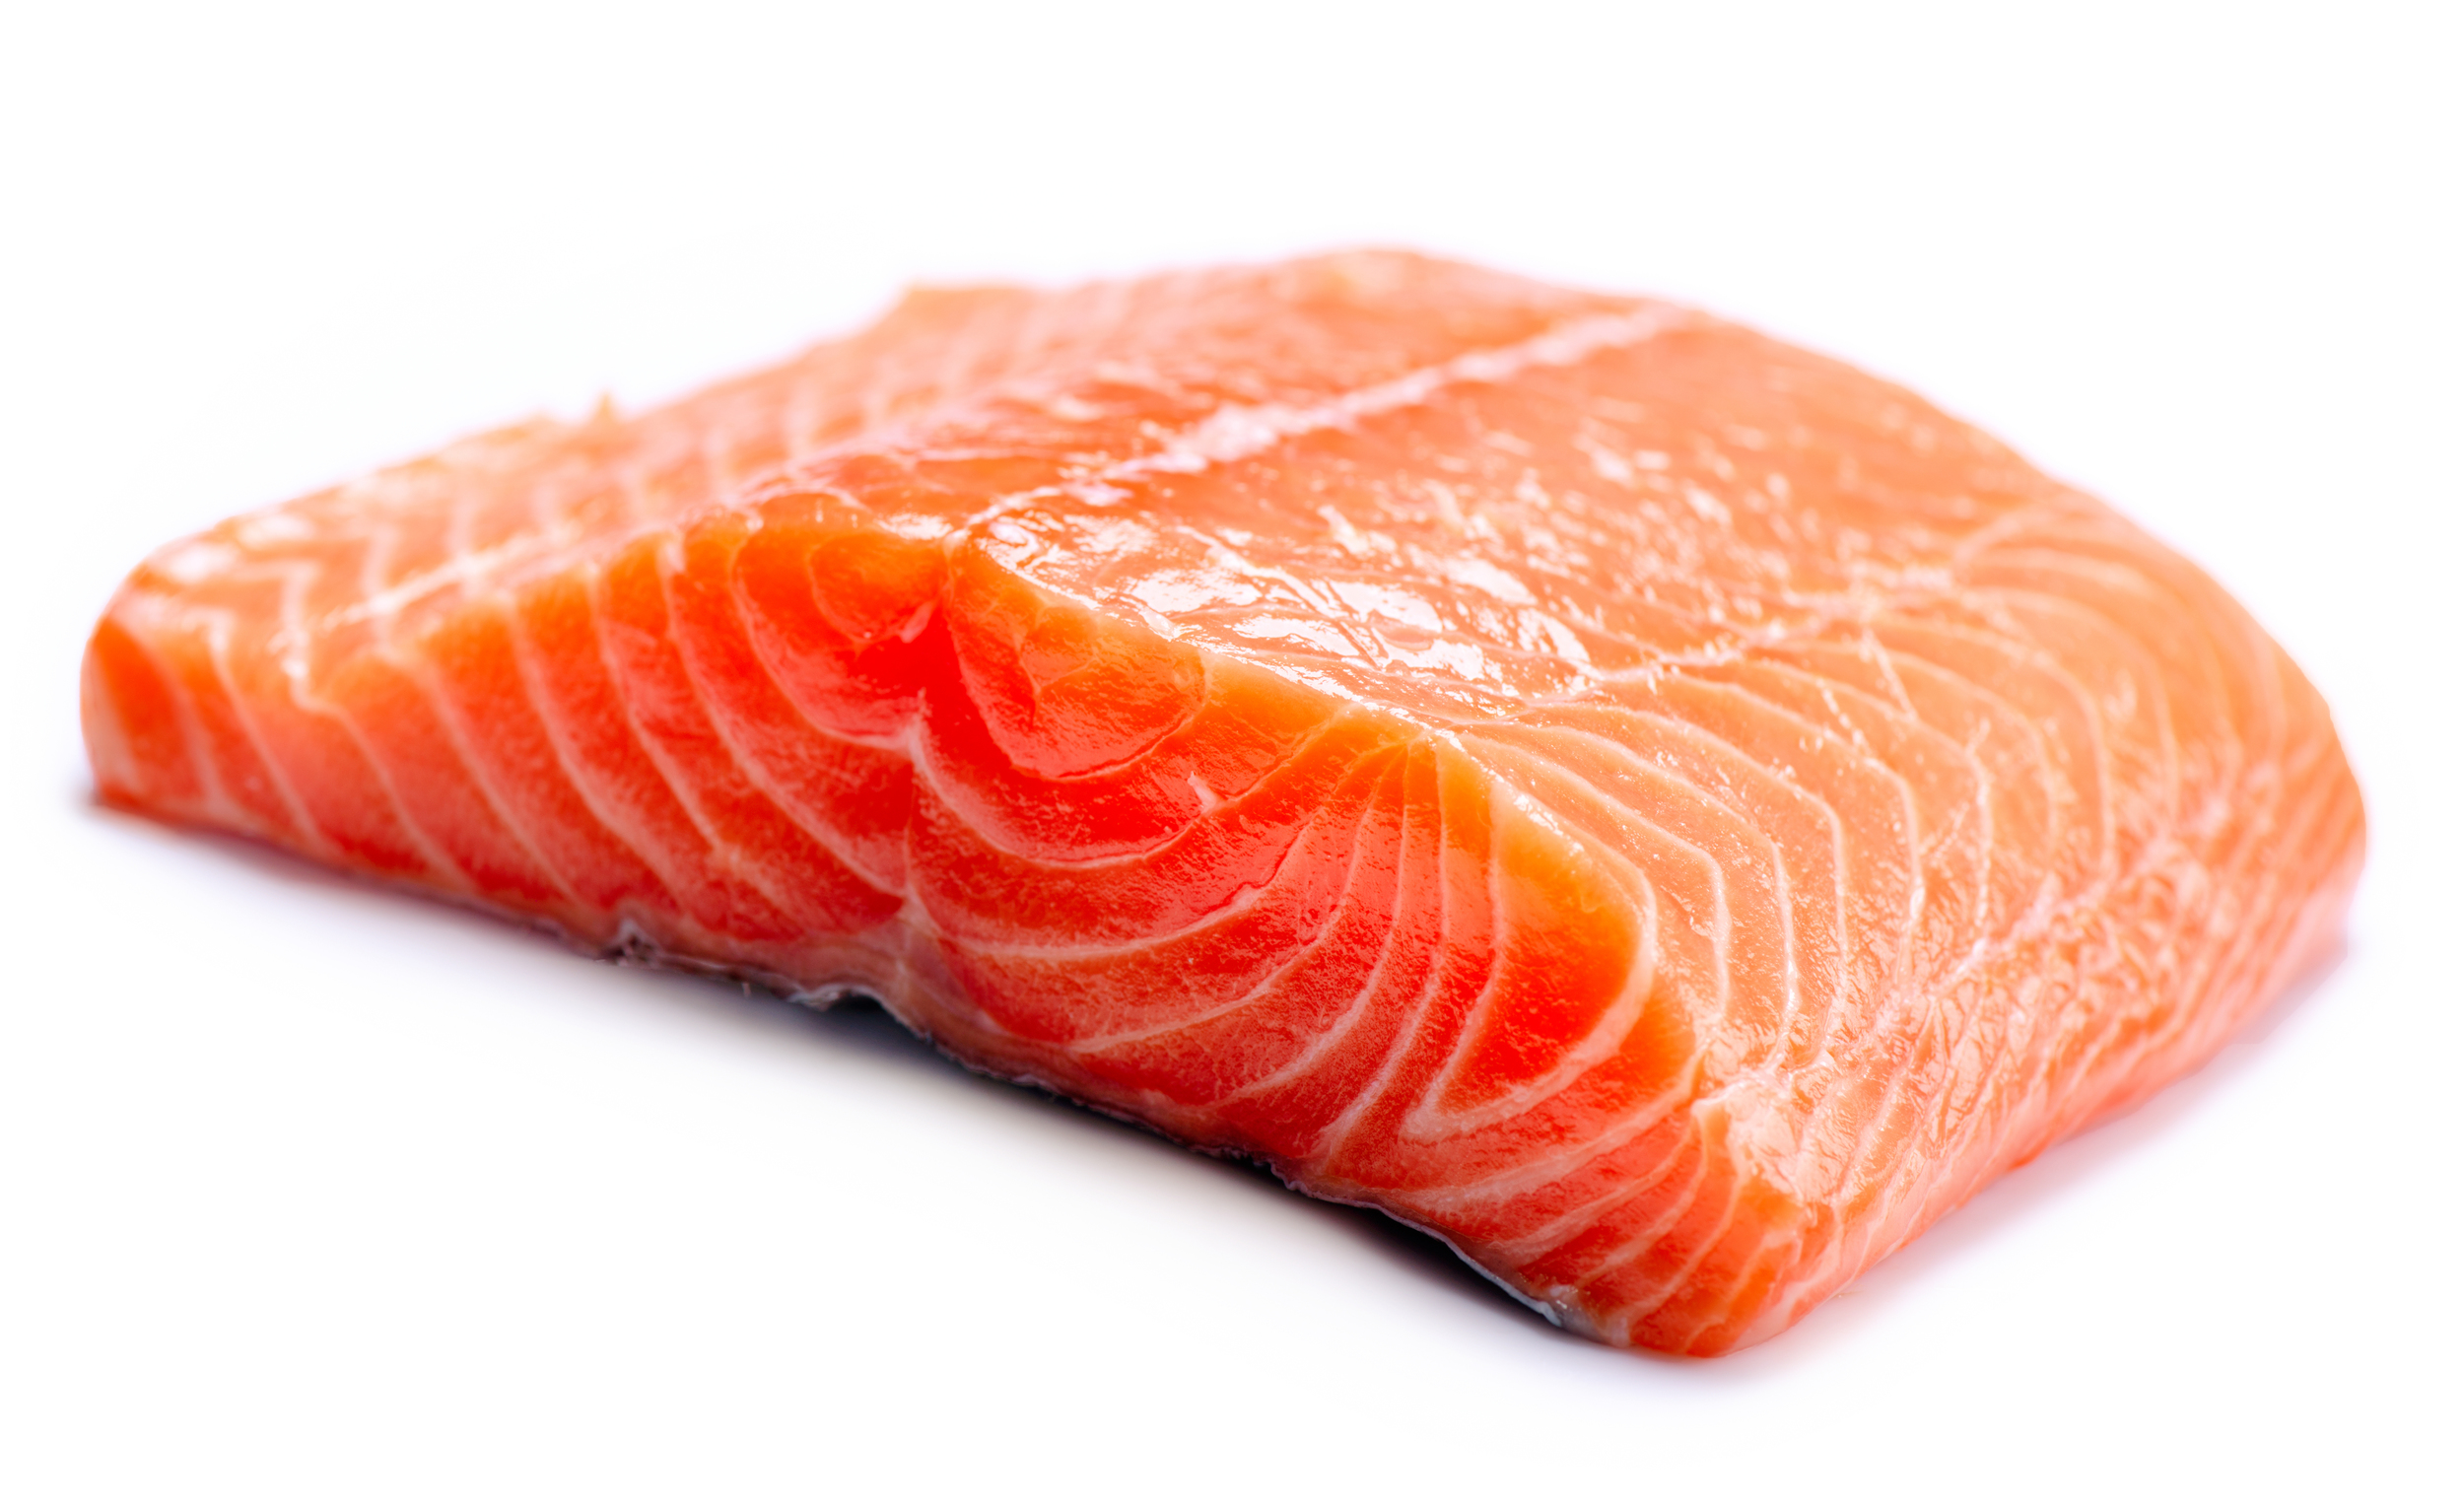 bigstock-Salmon-Raw-Fillet-Red-Fish-is-46084612.jpg